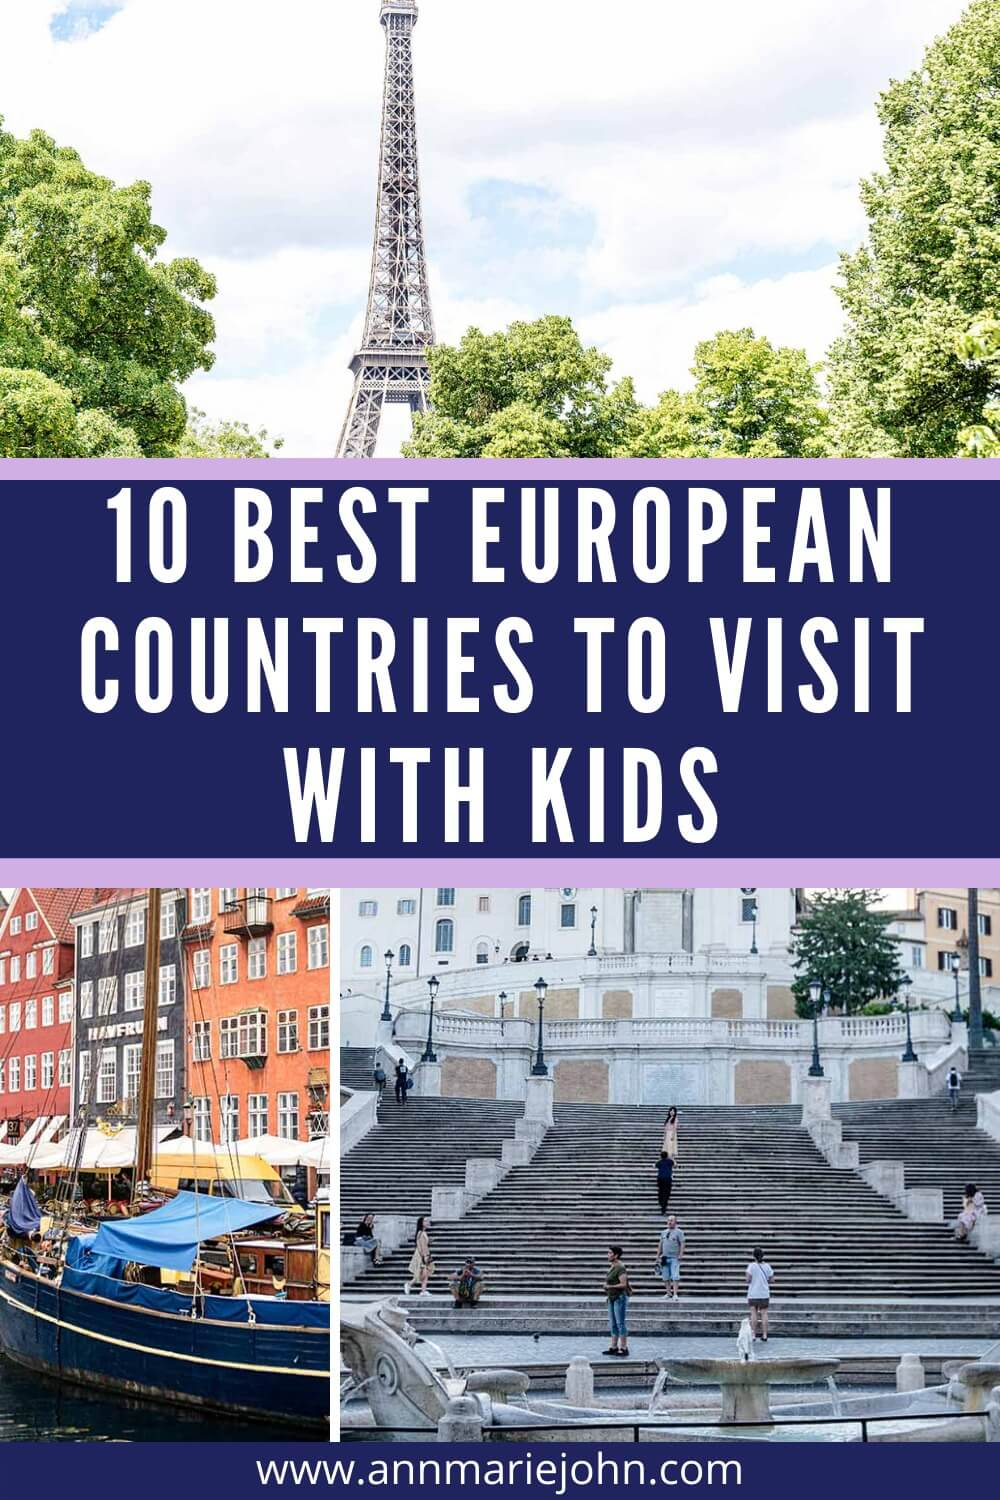 Ten Best European Countries to Visit With Kids